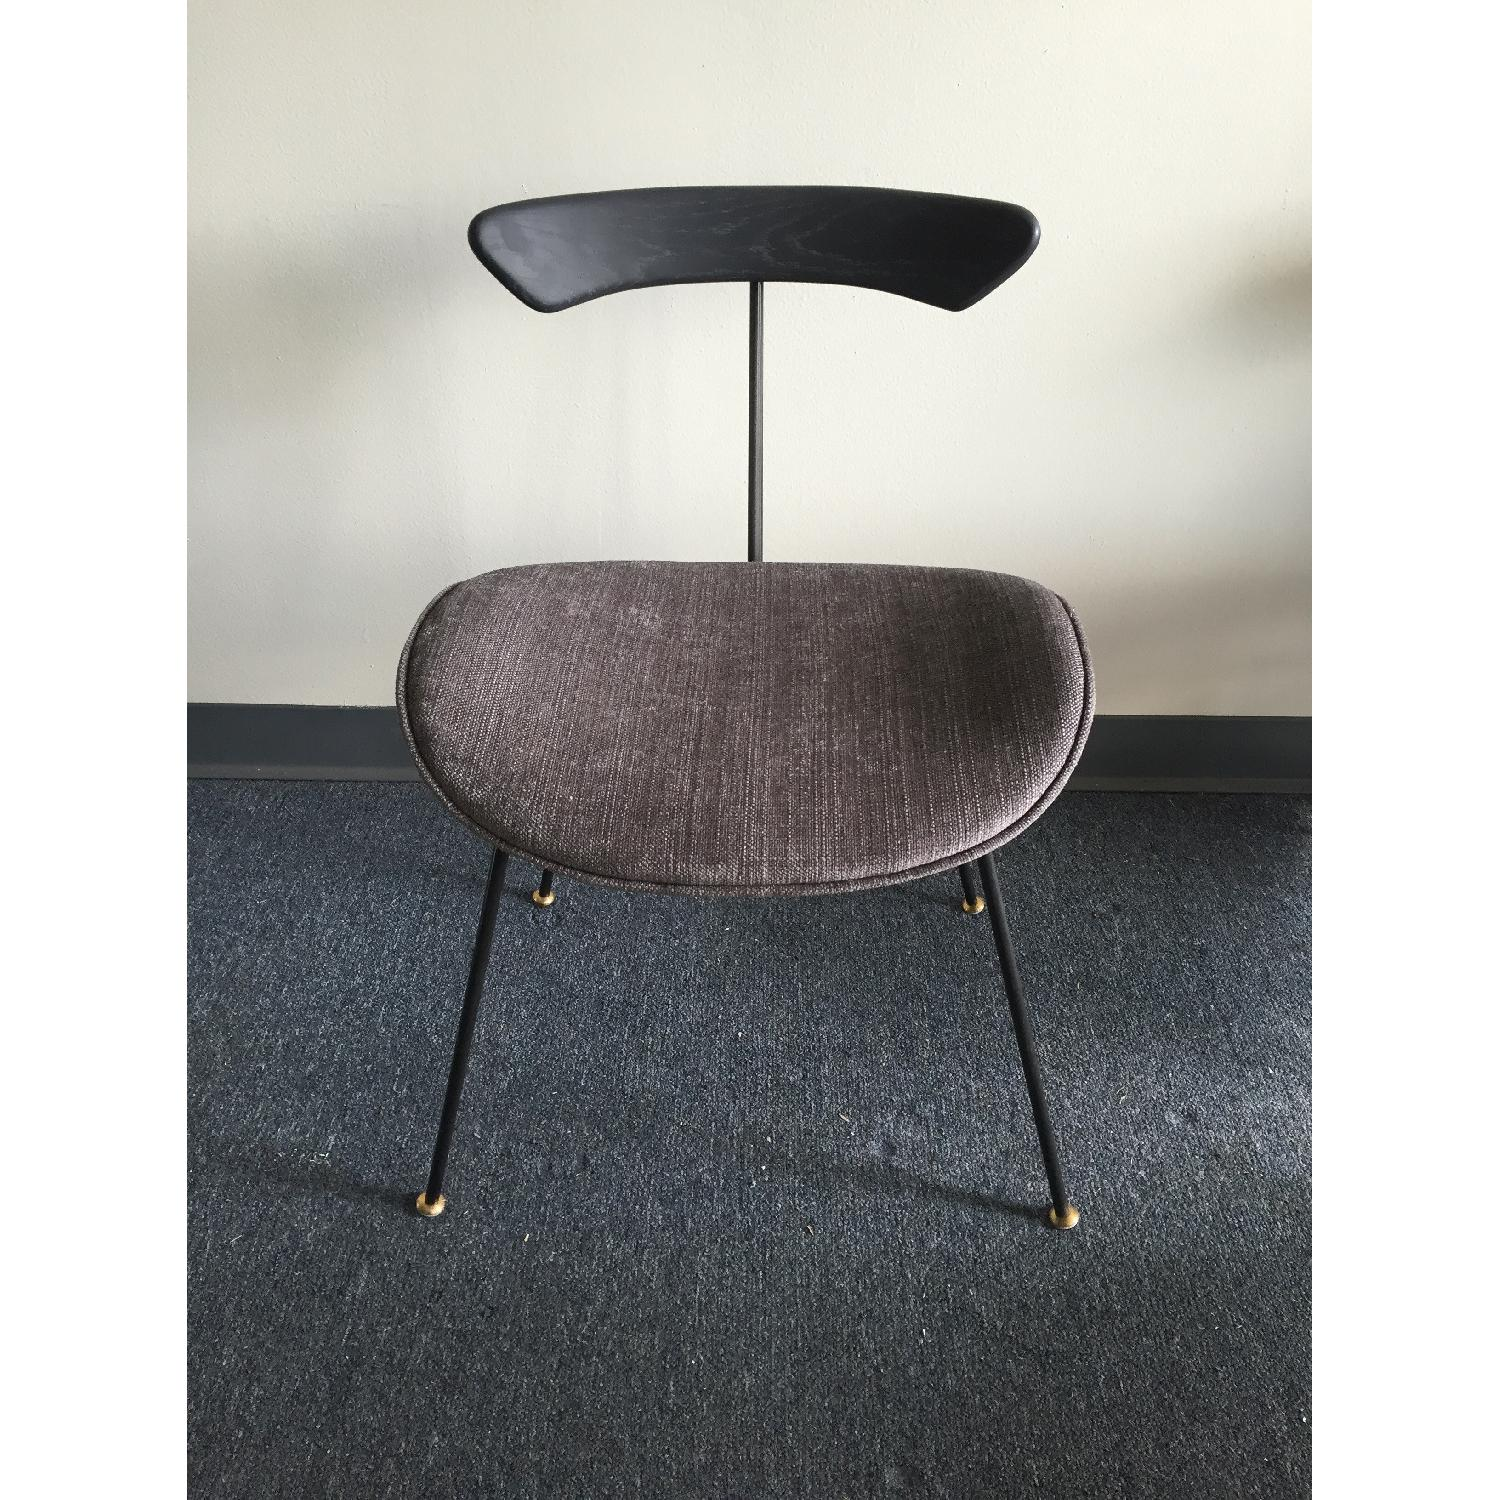 Lazzoni Grey Dining/Outdoor Chairs - image-1